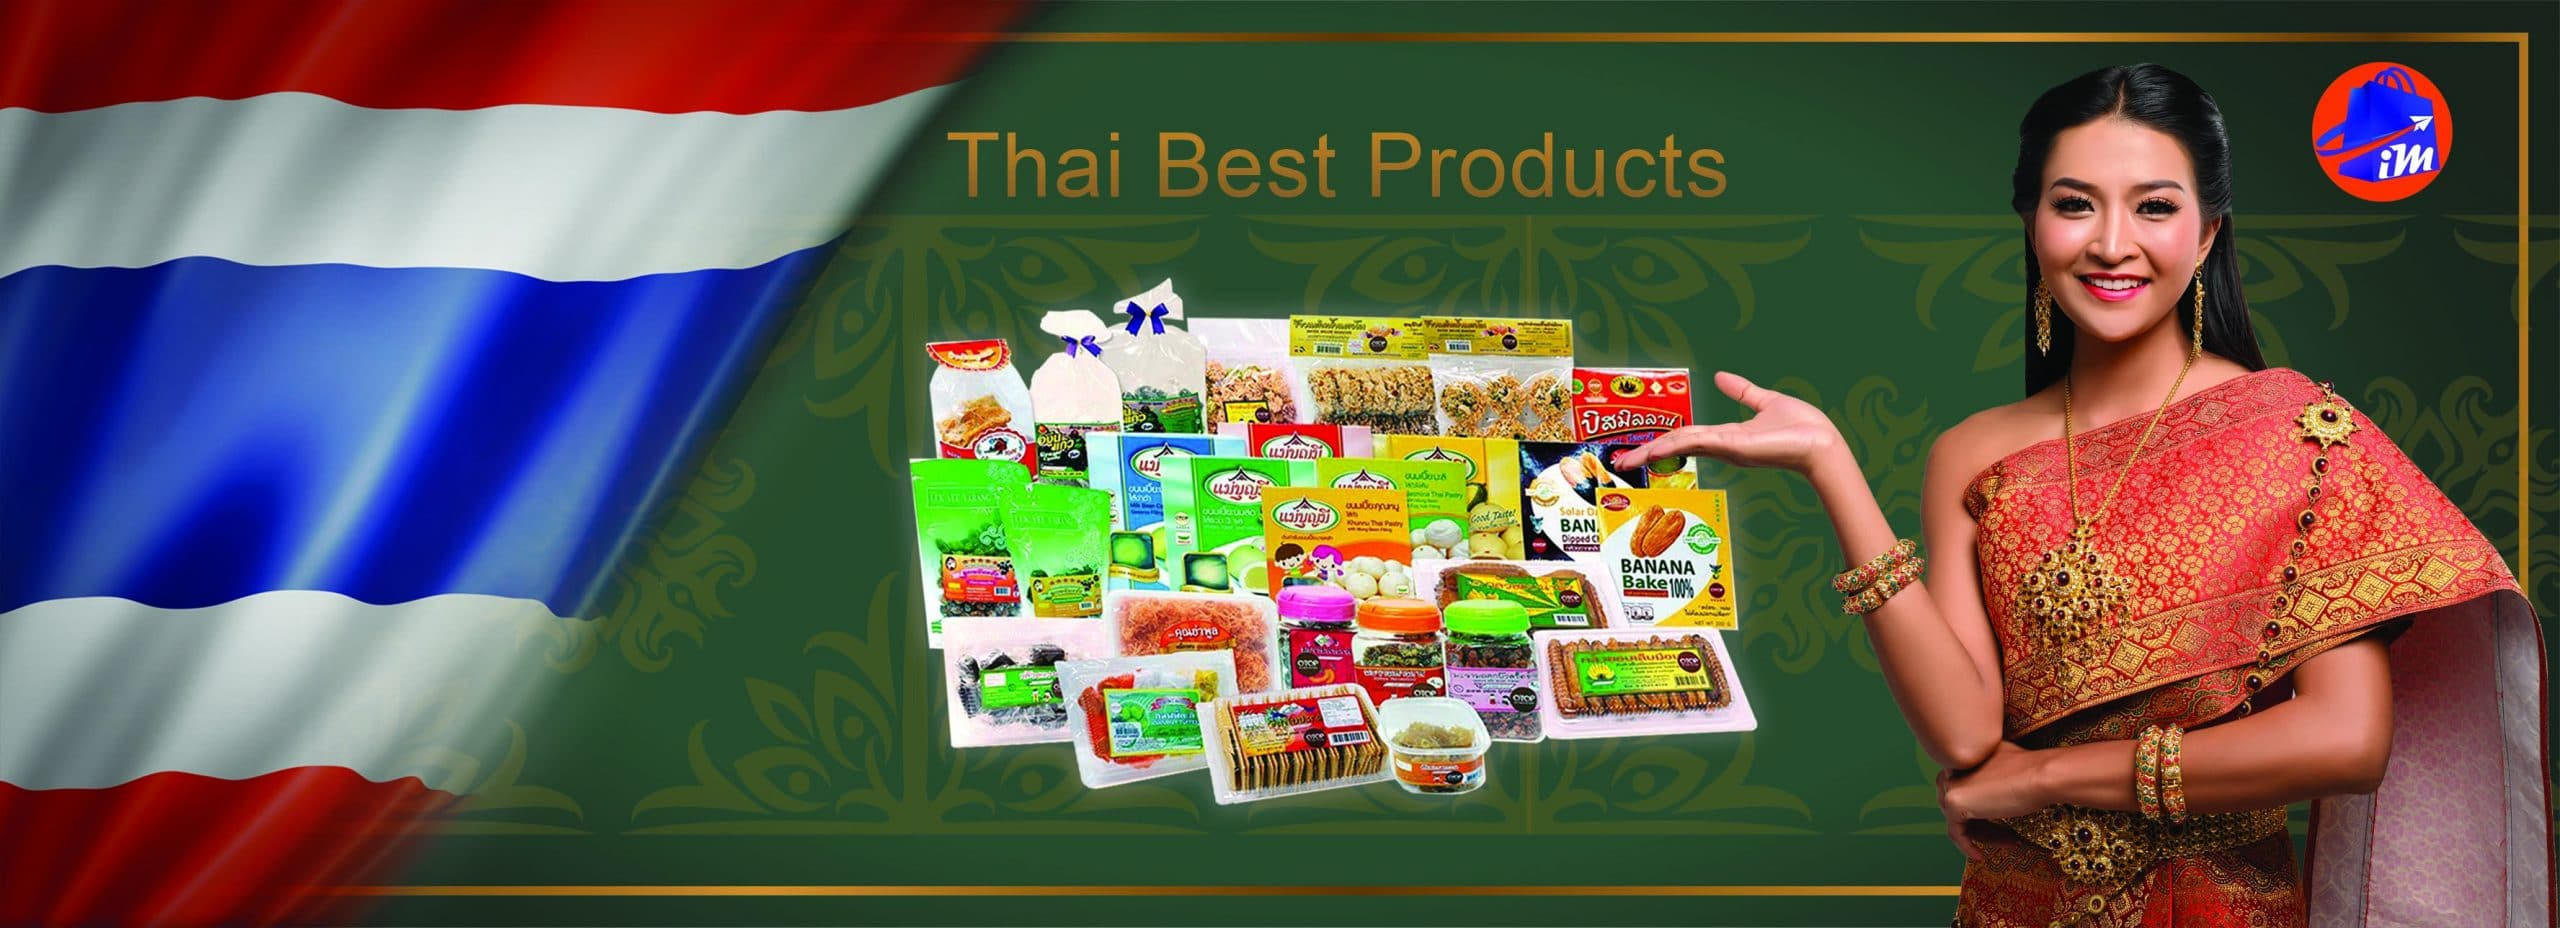 SME Thai Best Products